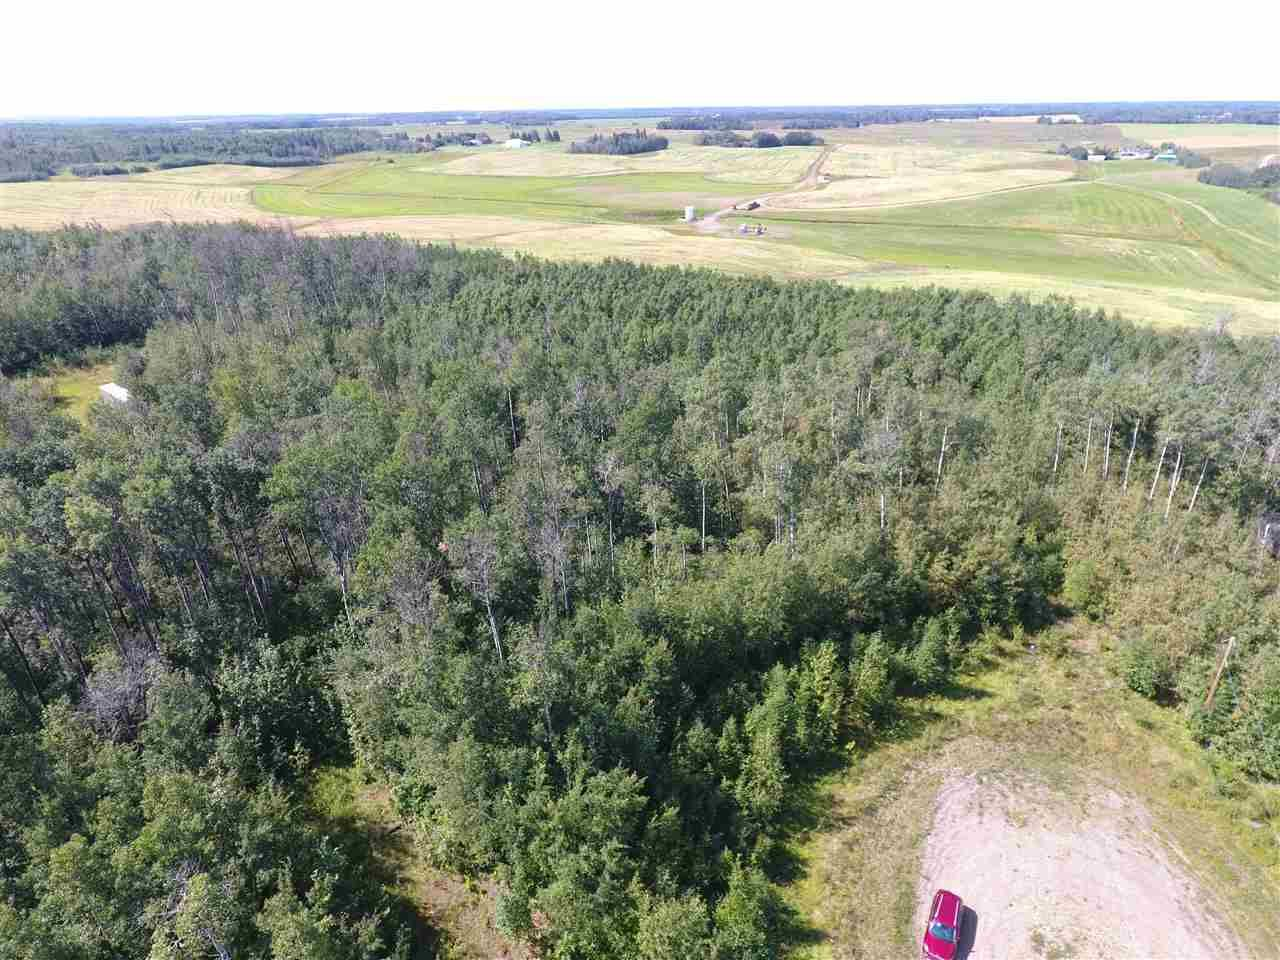 Photo 10: Photos: 22 Morgan Way: Rural Lac Ste. Anne County Rural Land/Vacant Lot for sale : MLS®# E4209833